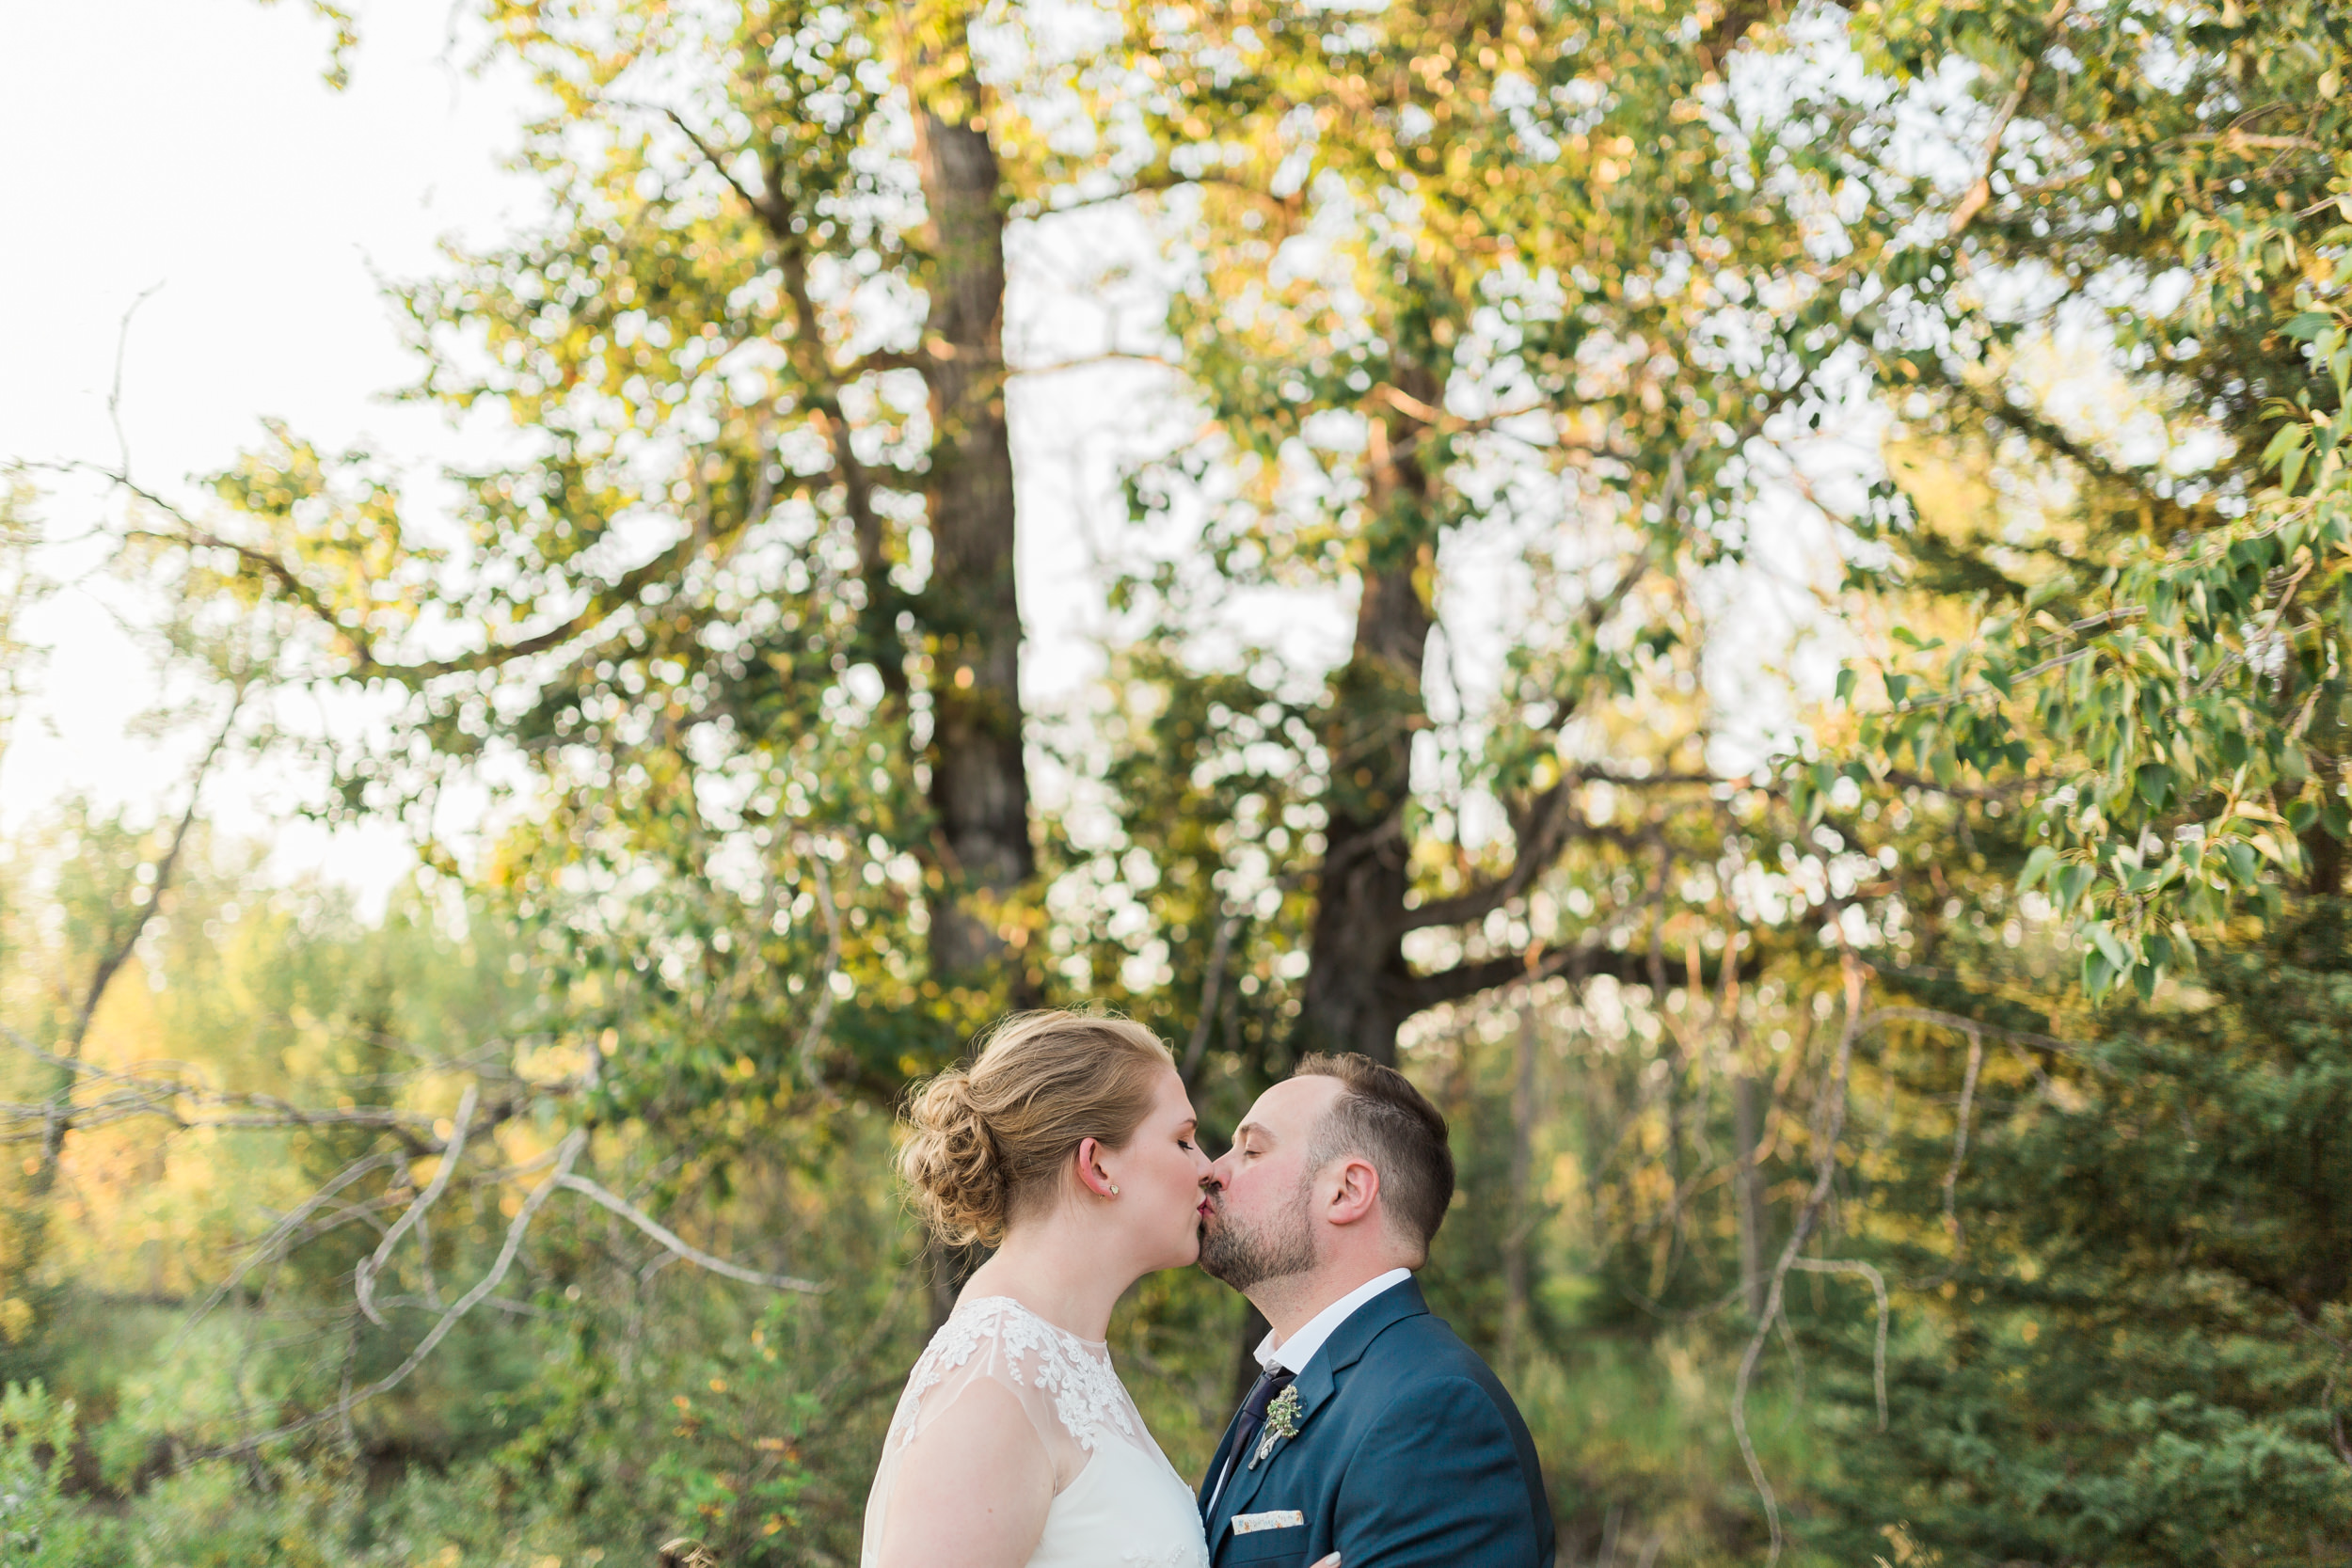 Romantic wedding in Bragg Creek